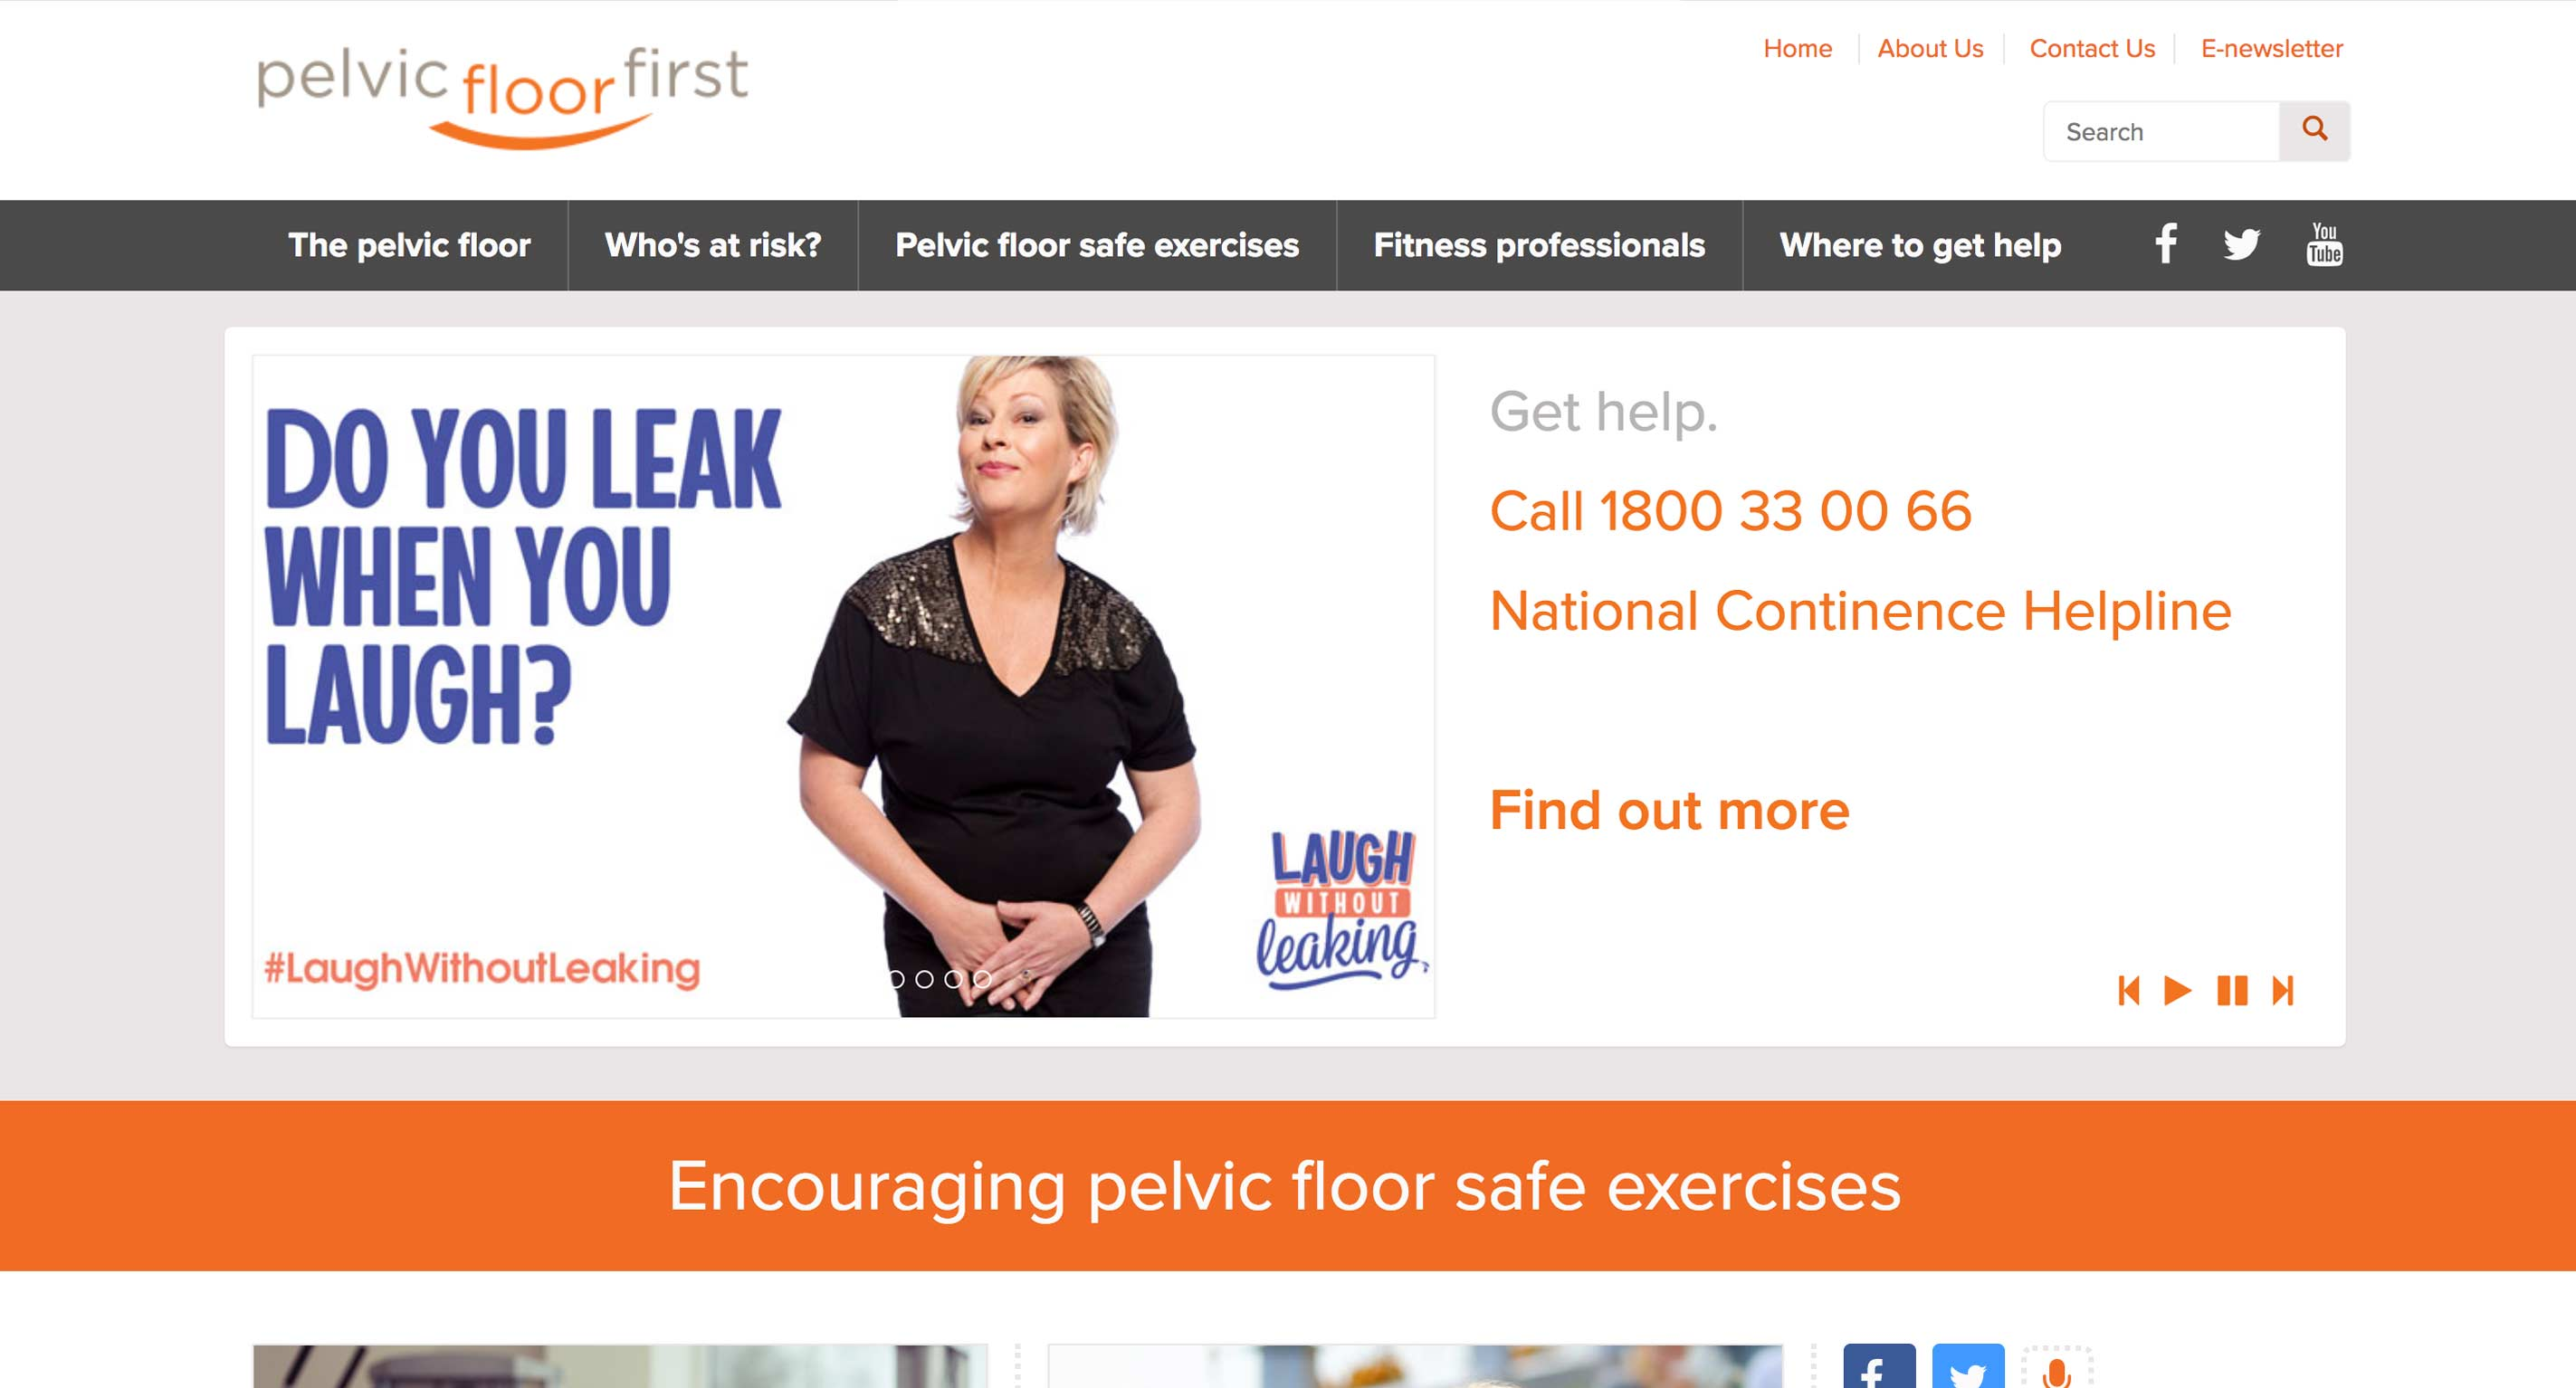 Pelvic Floor First - Home Page